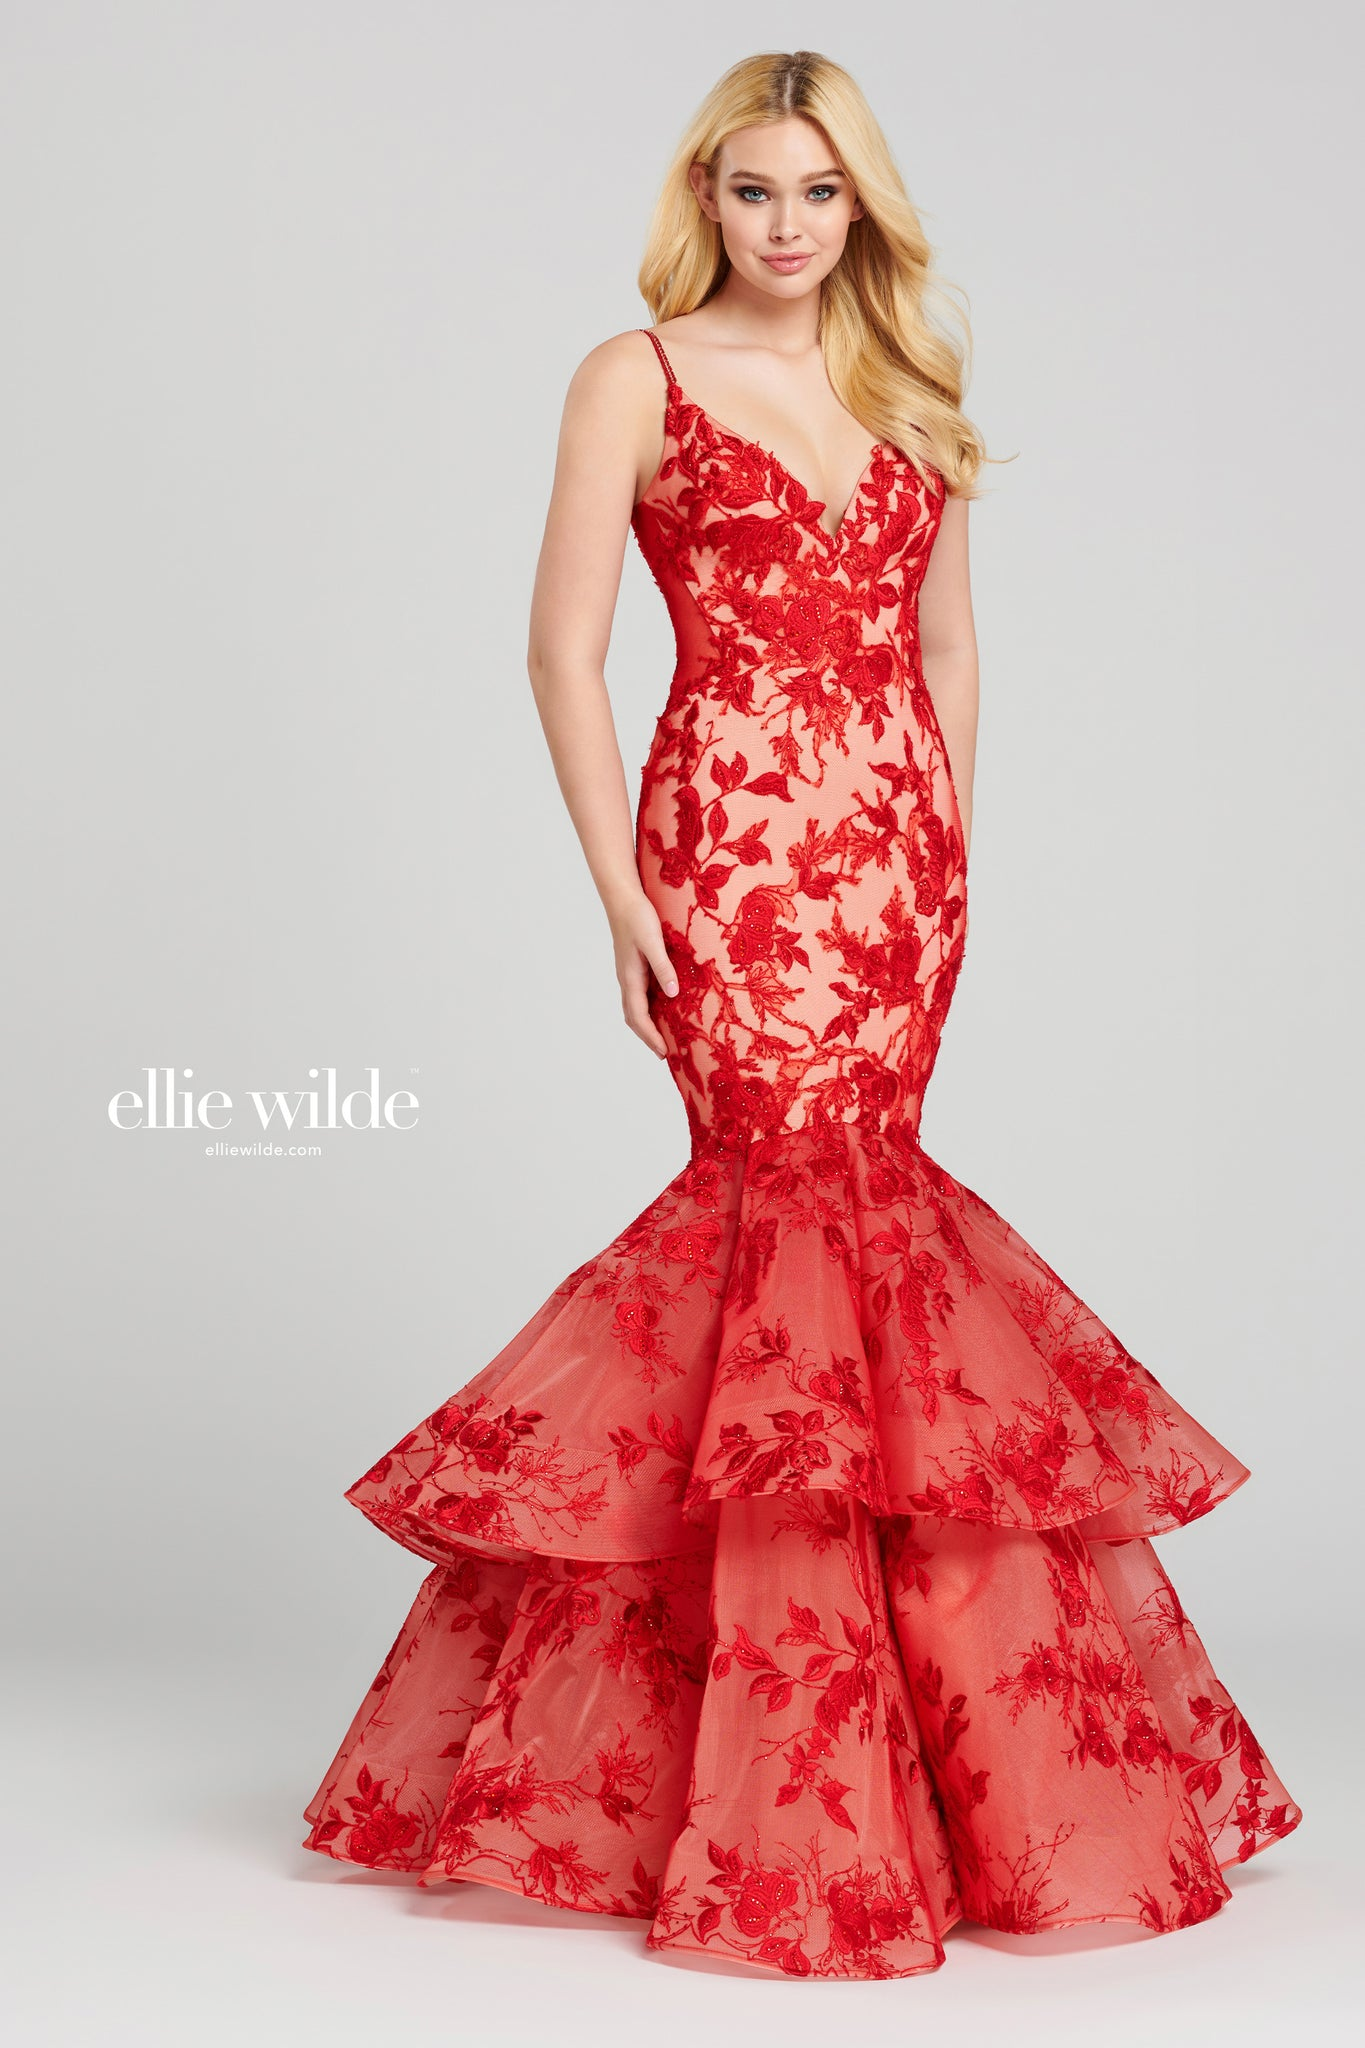 Ellie Wilde Red Mermaid Prom & Pageant Dress - Gissings Boutique